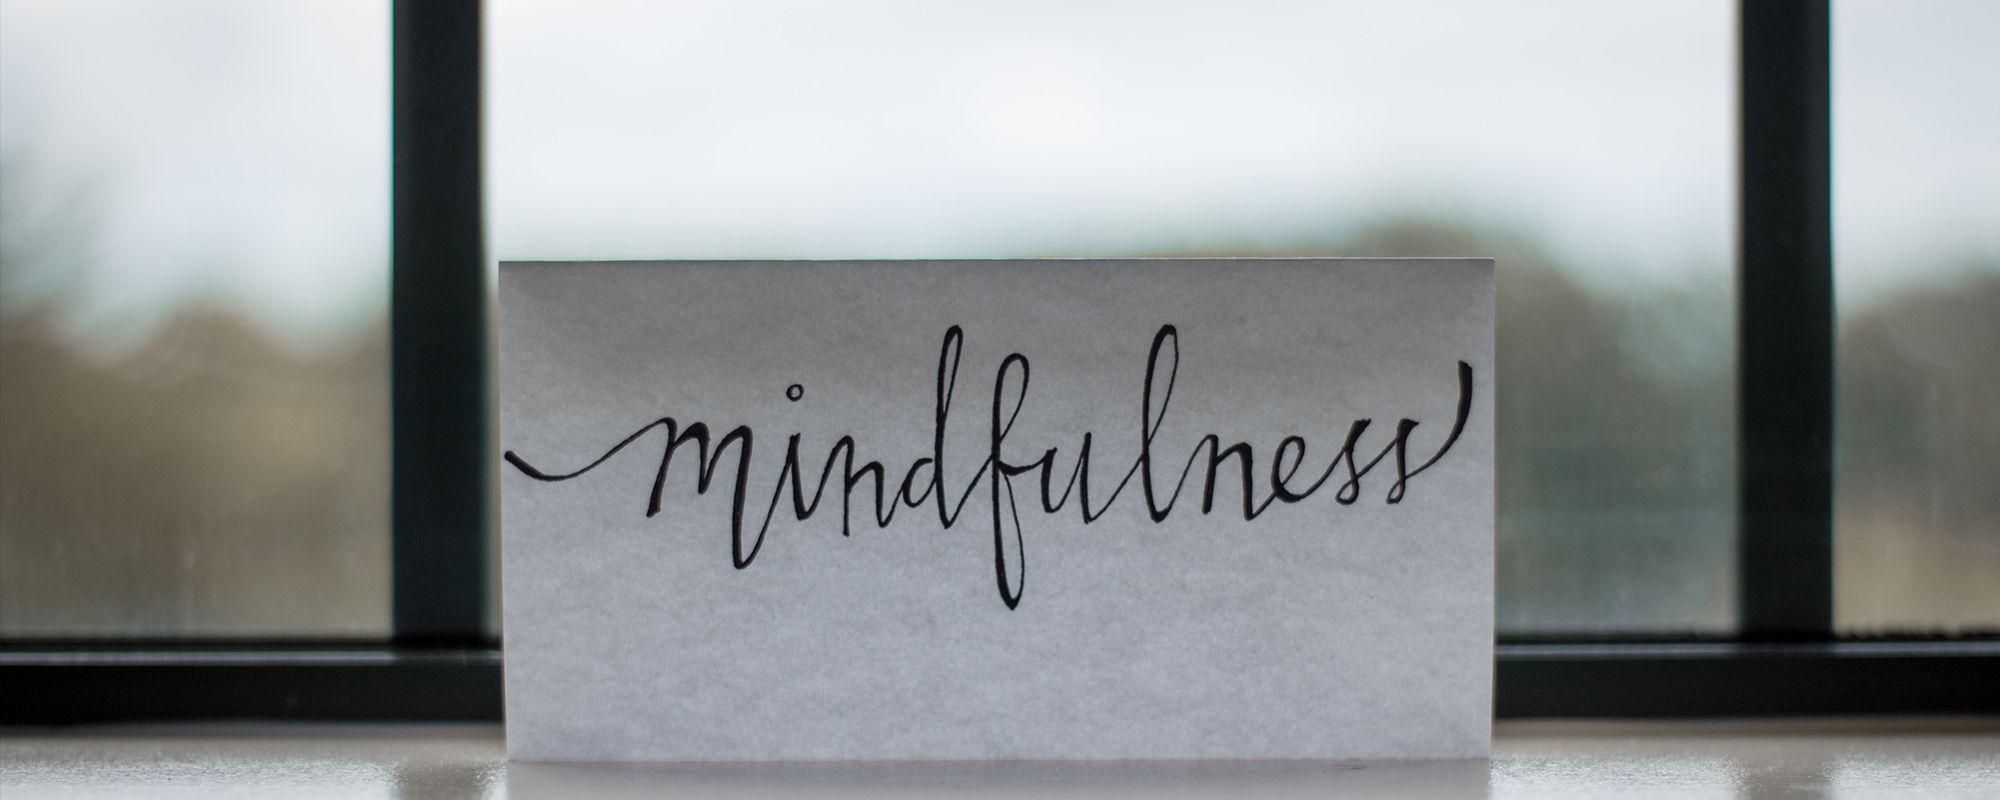 Mindfulness Support For Employers